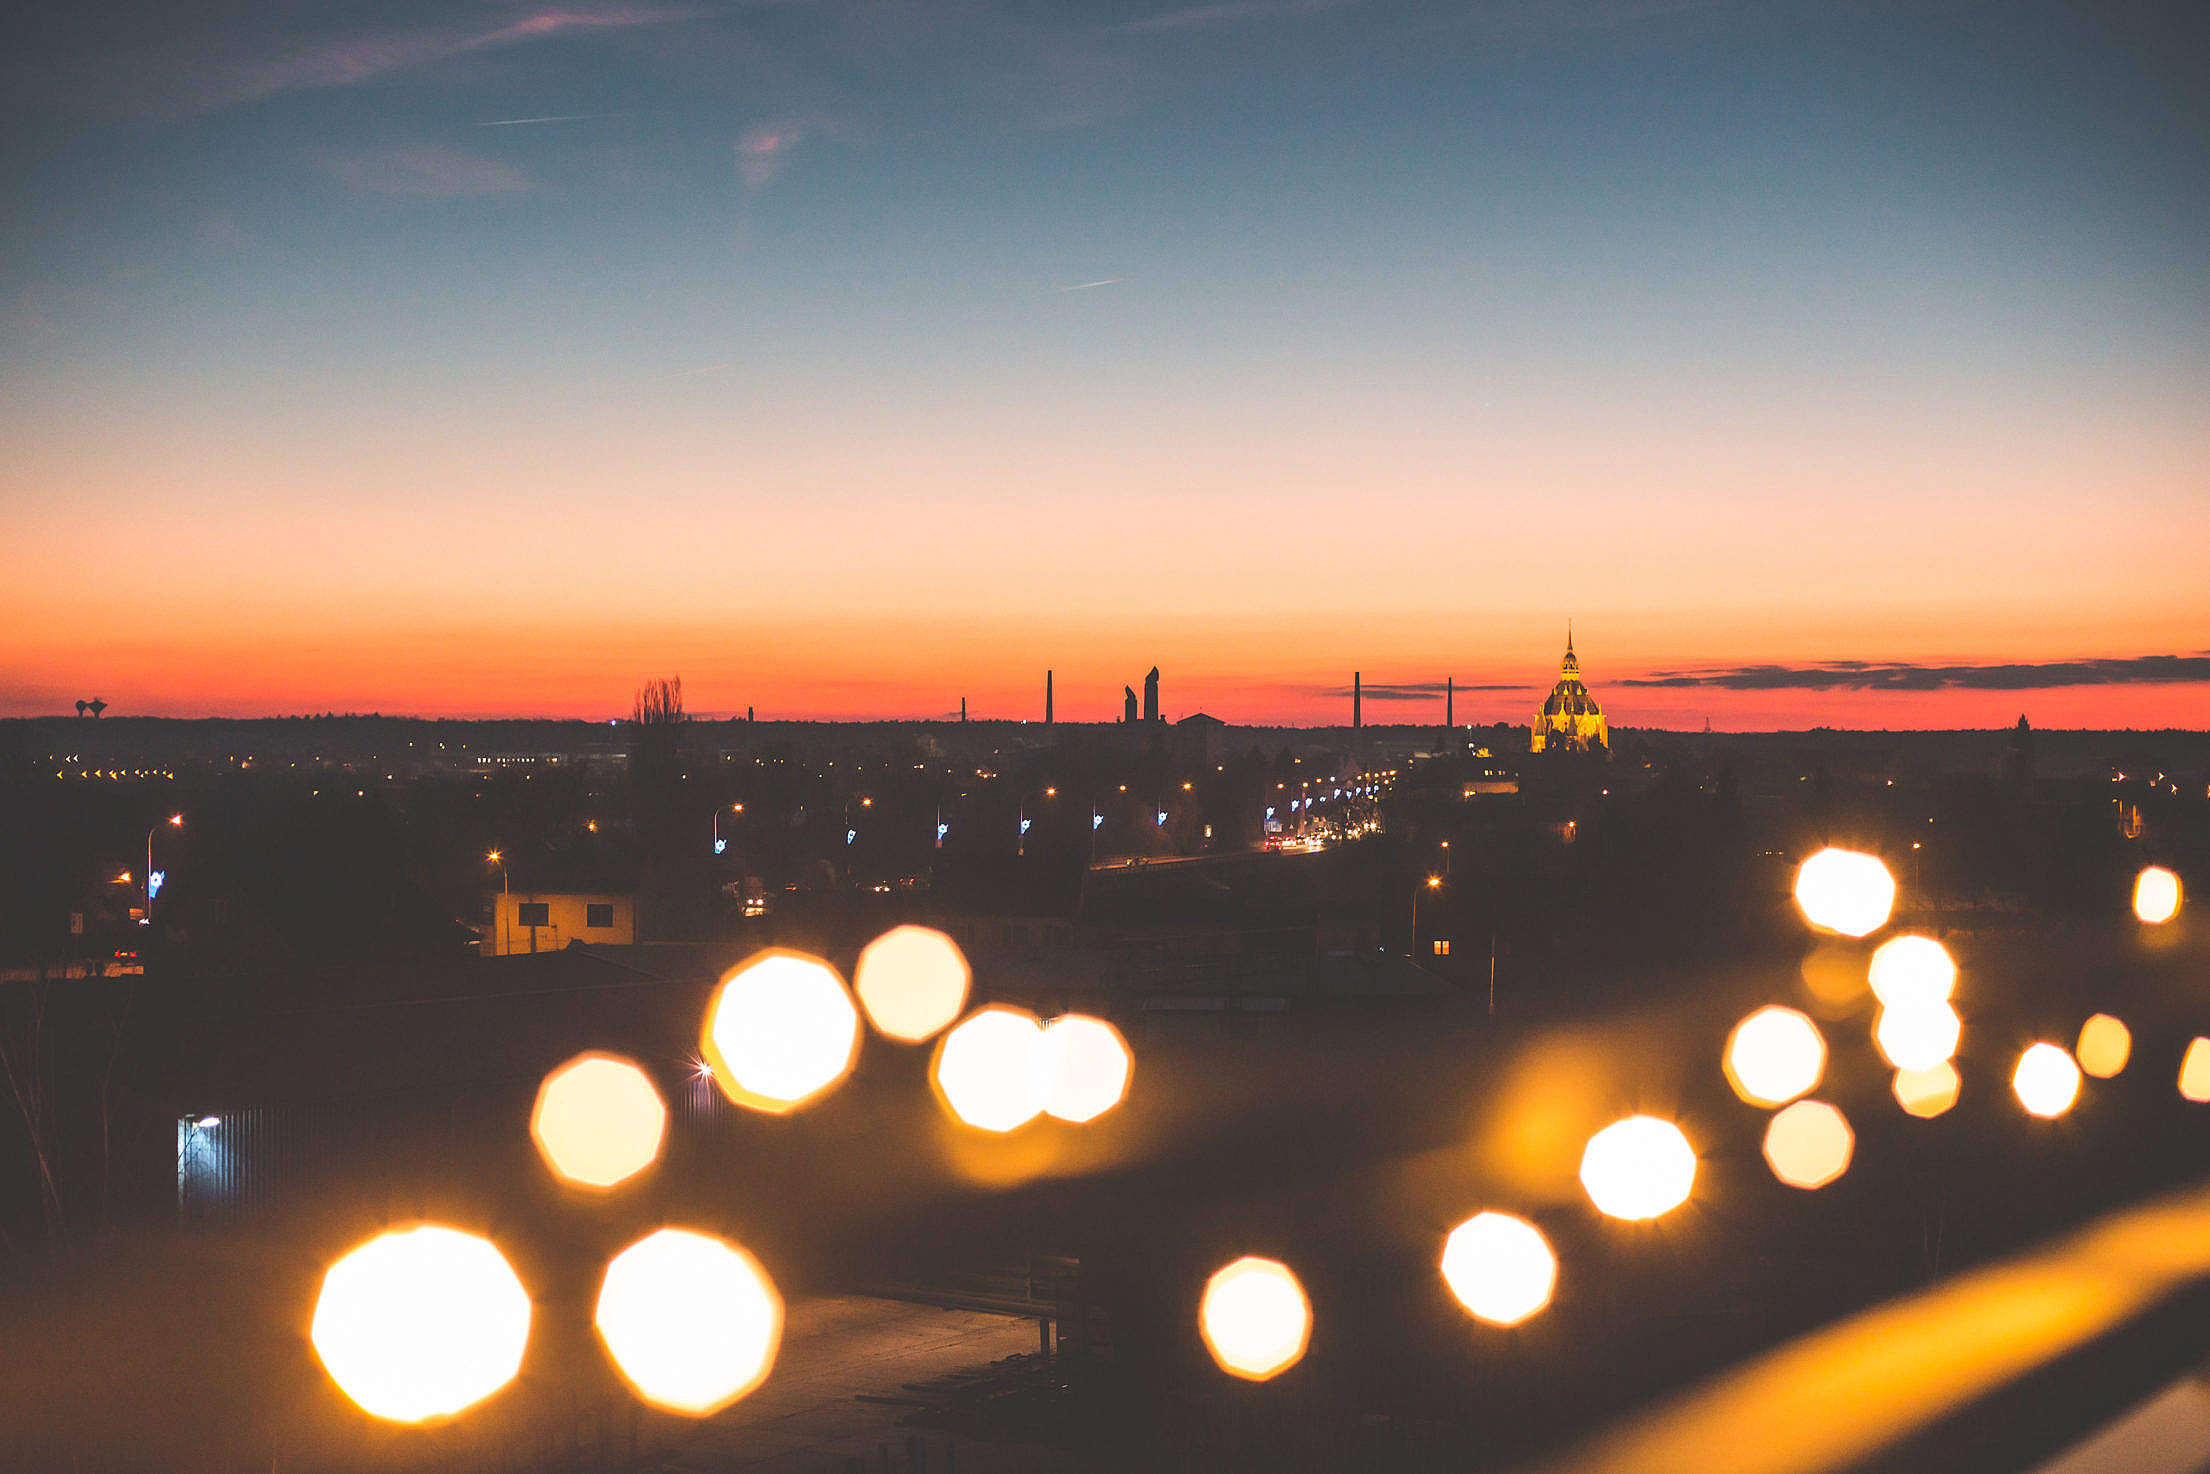 Sunset Cityscape with Bokeh Lights Free Stock Photo